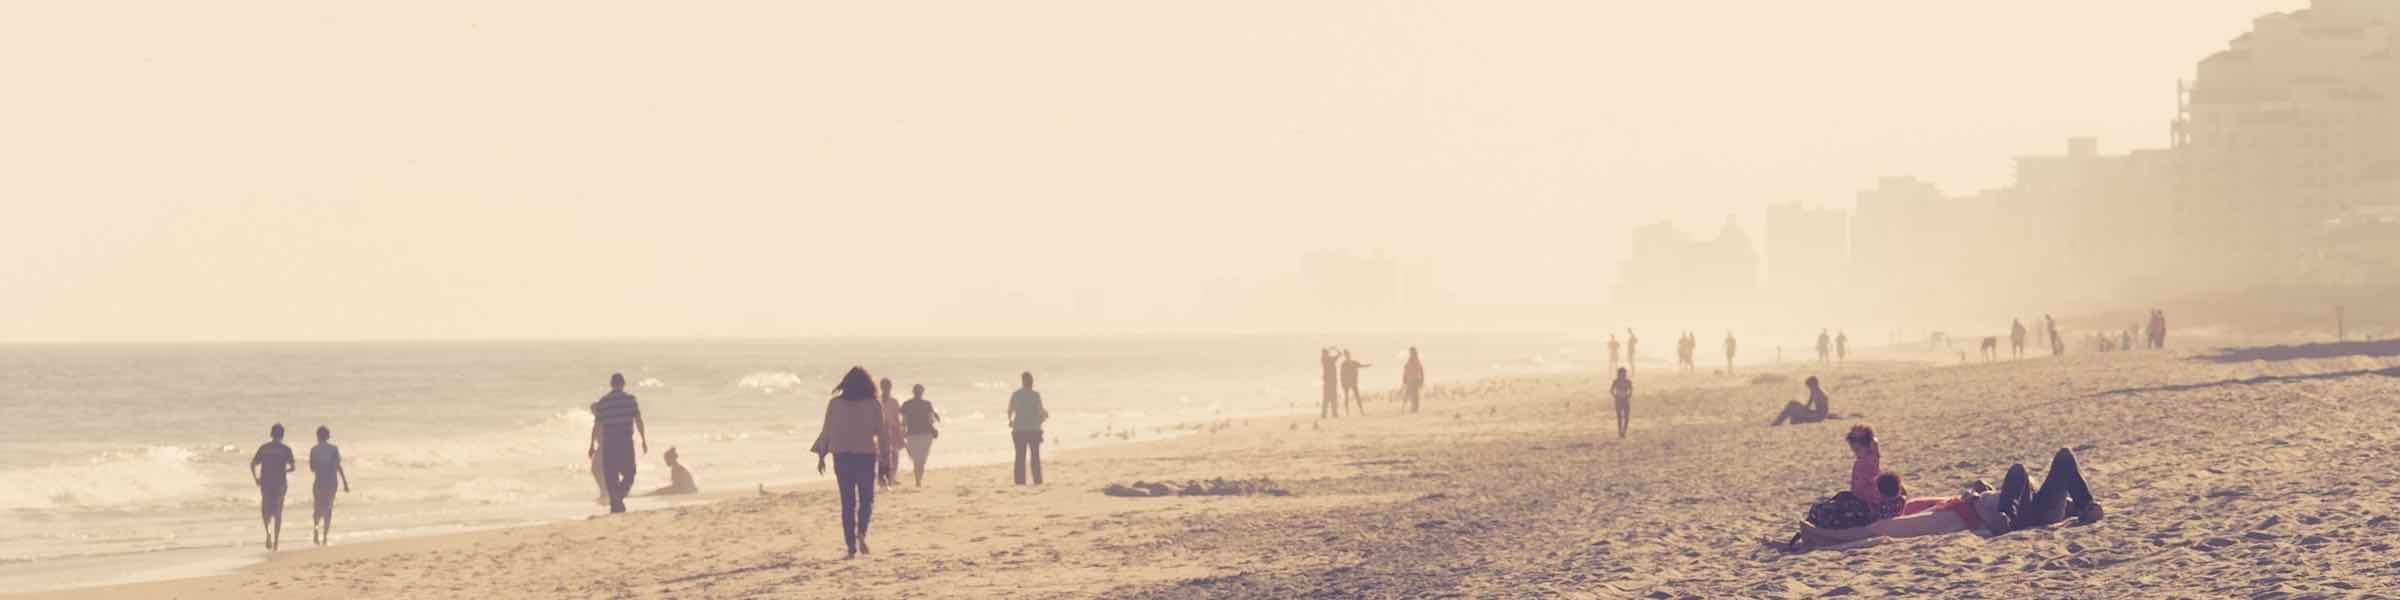 Hazy Silhouetted Scene Of People Walking And Sitting On The Beach At Myrtle Sc